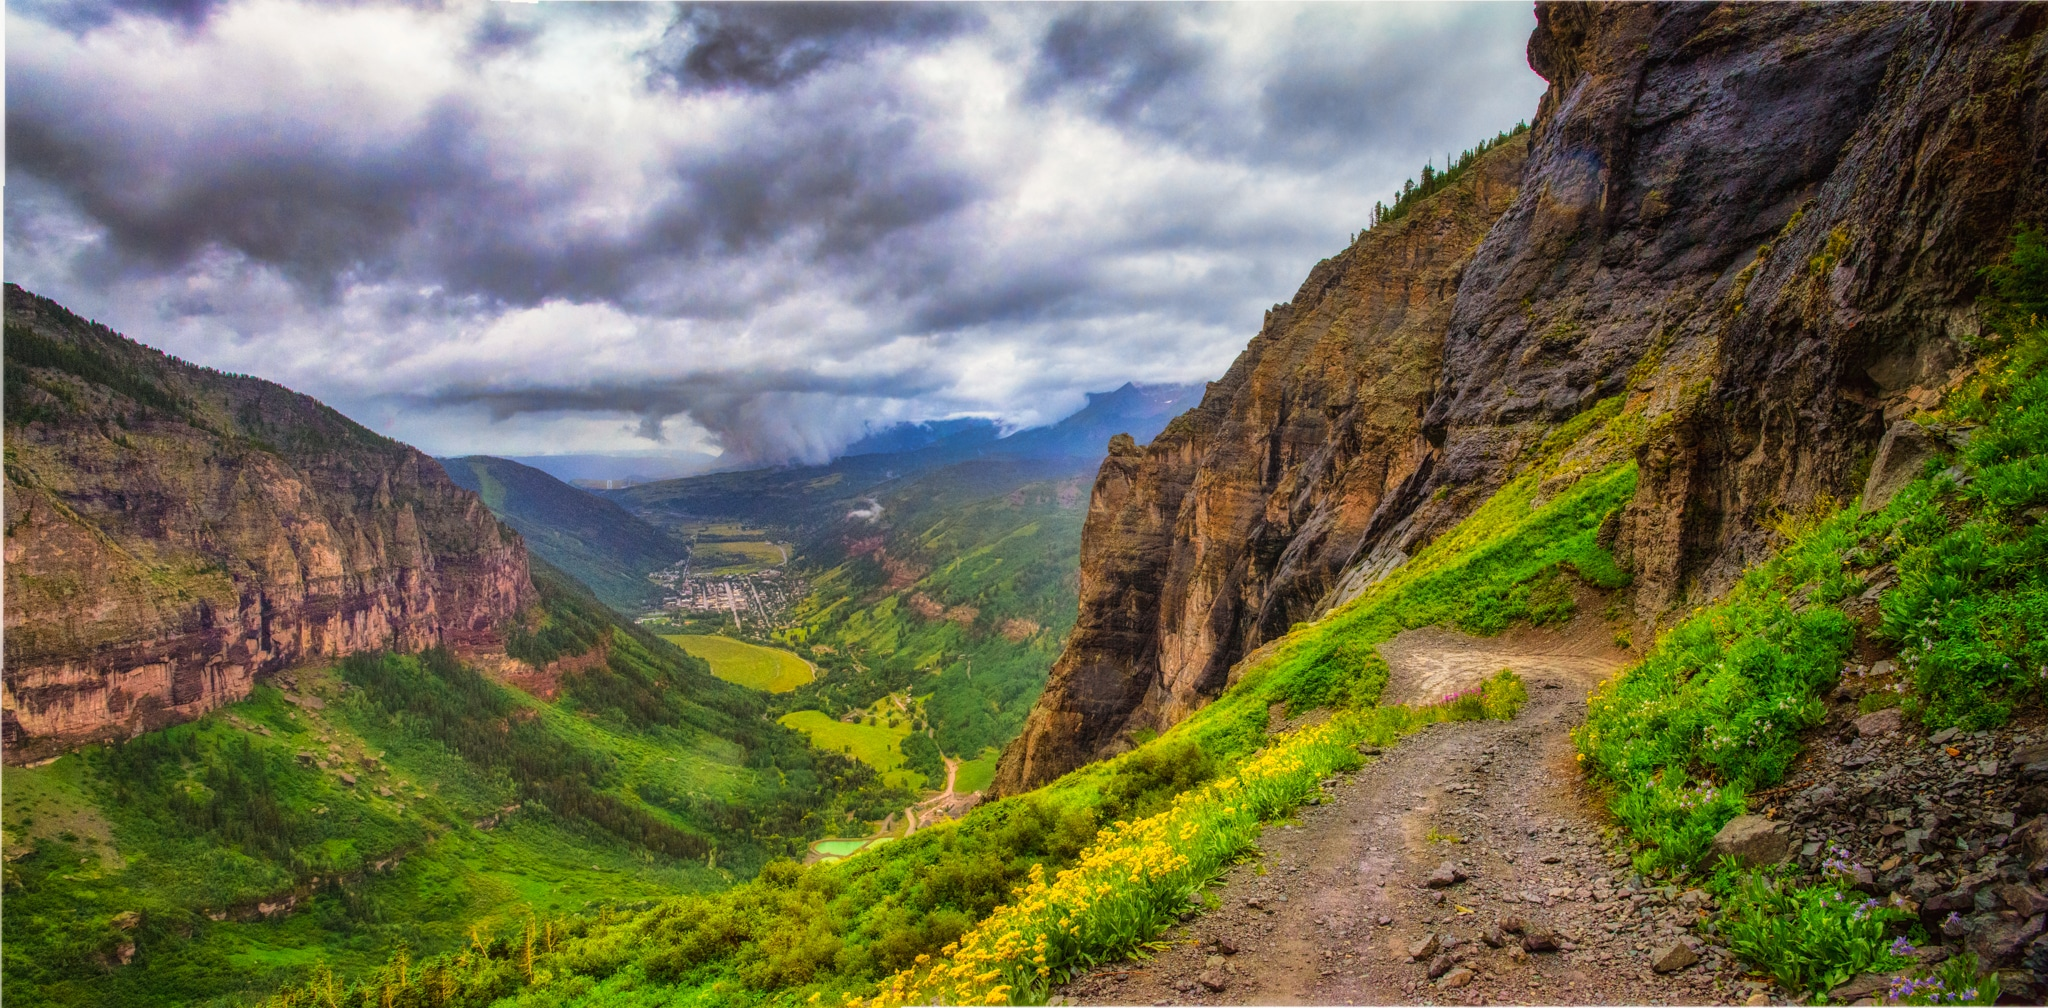 From a switchback on Black Bear Road, the town of Telluride, Colorado, becomes visible through the rain clouds and fog.